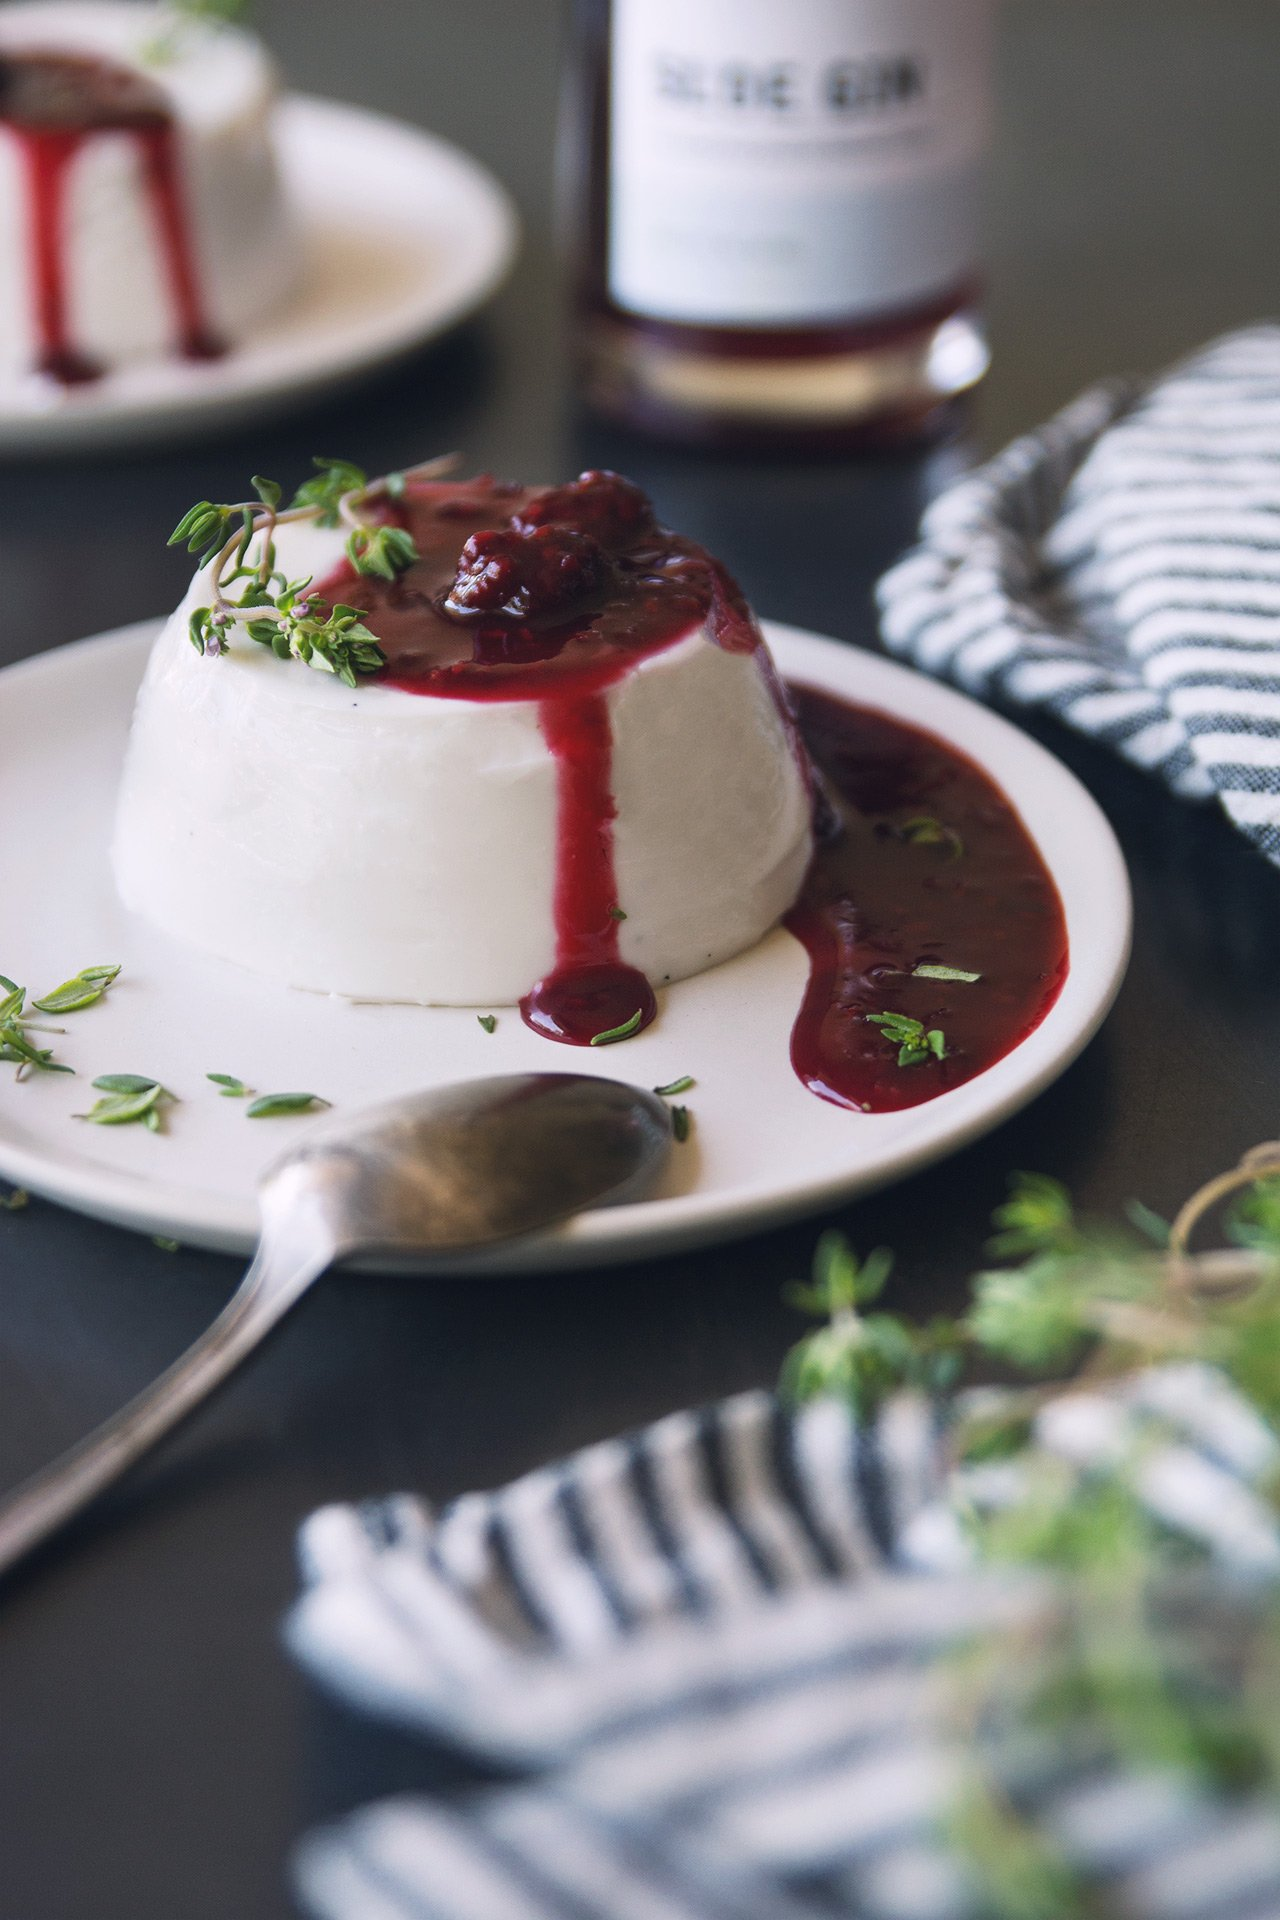 Coconut Panna Cotta with Blackberry, Thyme & Sloe Gin Compote by HonestlyYUM (honestlyyum.com)